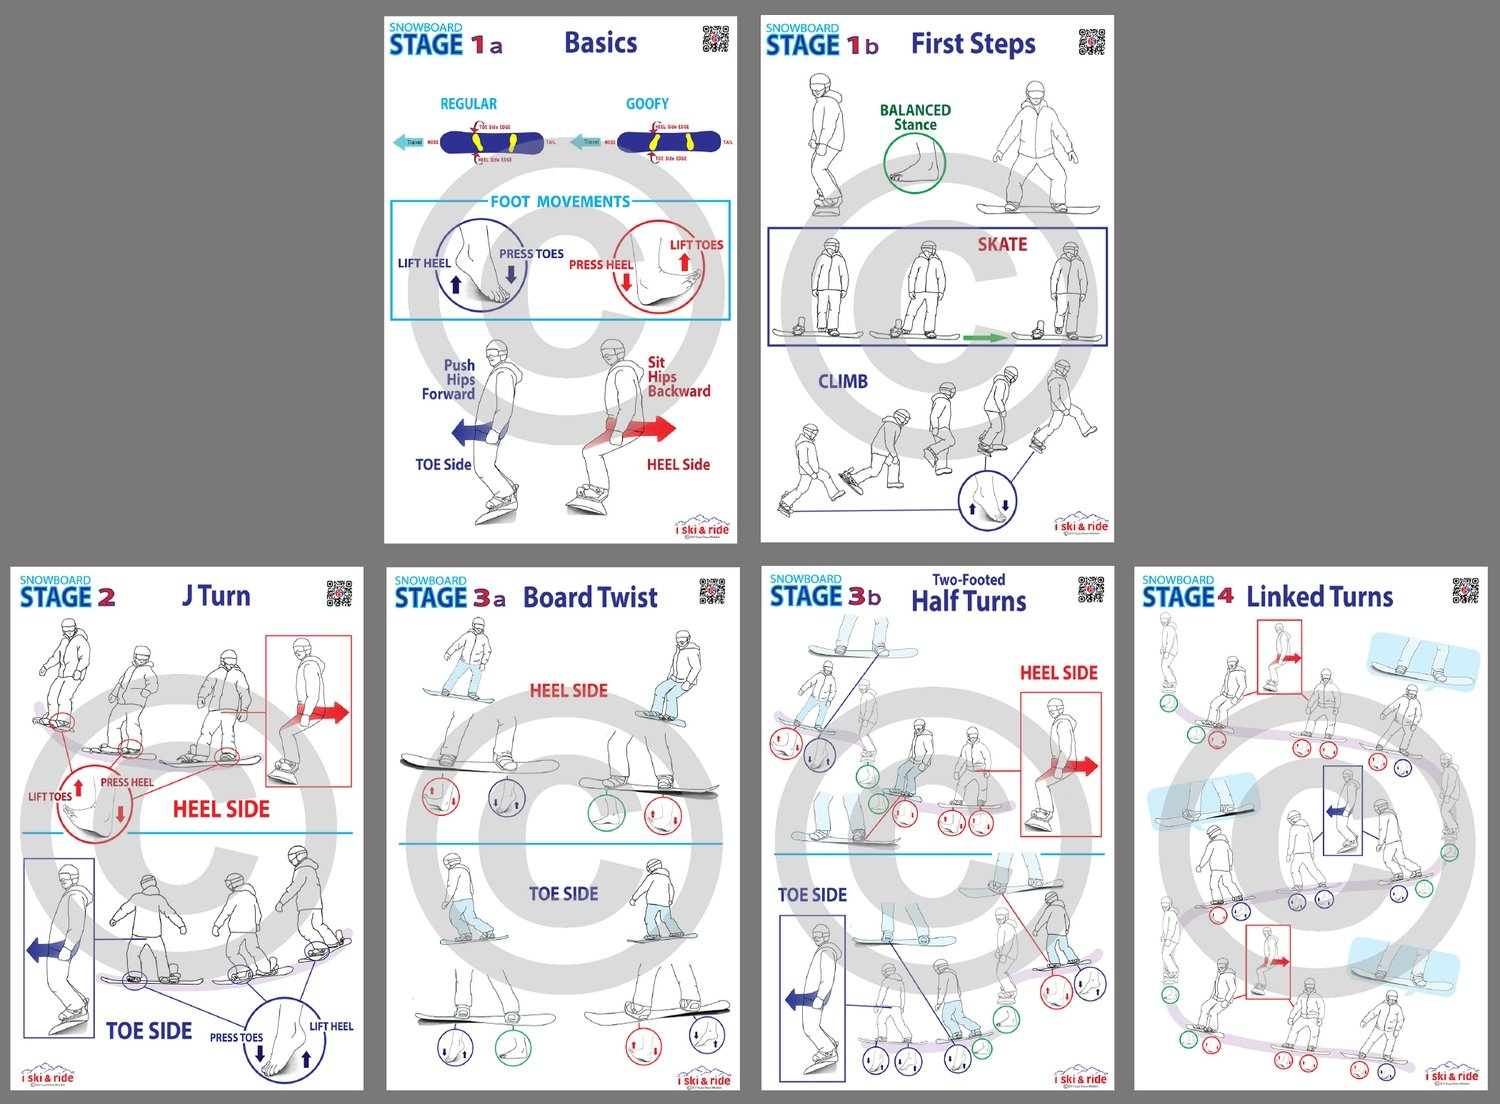 """24""""x36"""" ISR SNOWBOARD Stage Signs - Complete Set of 6"""